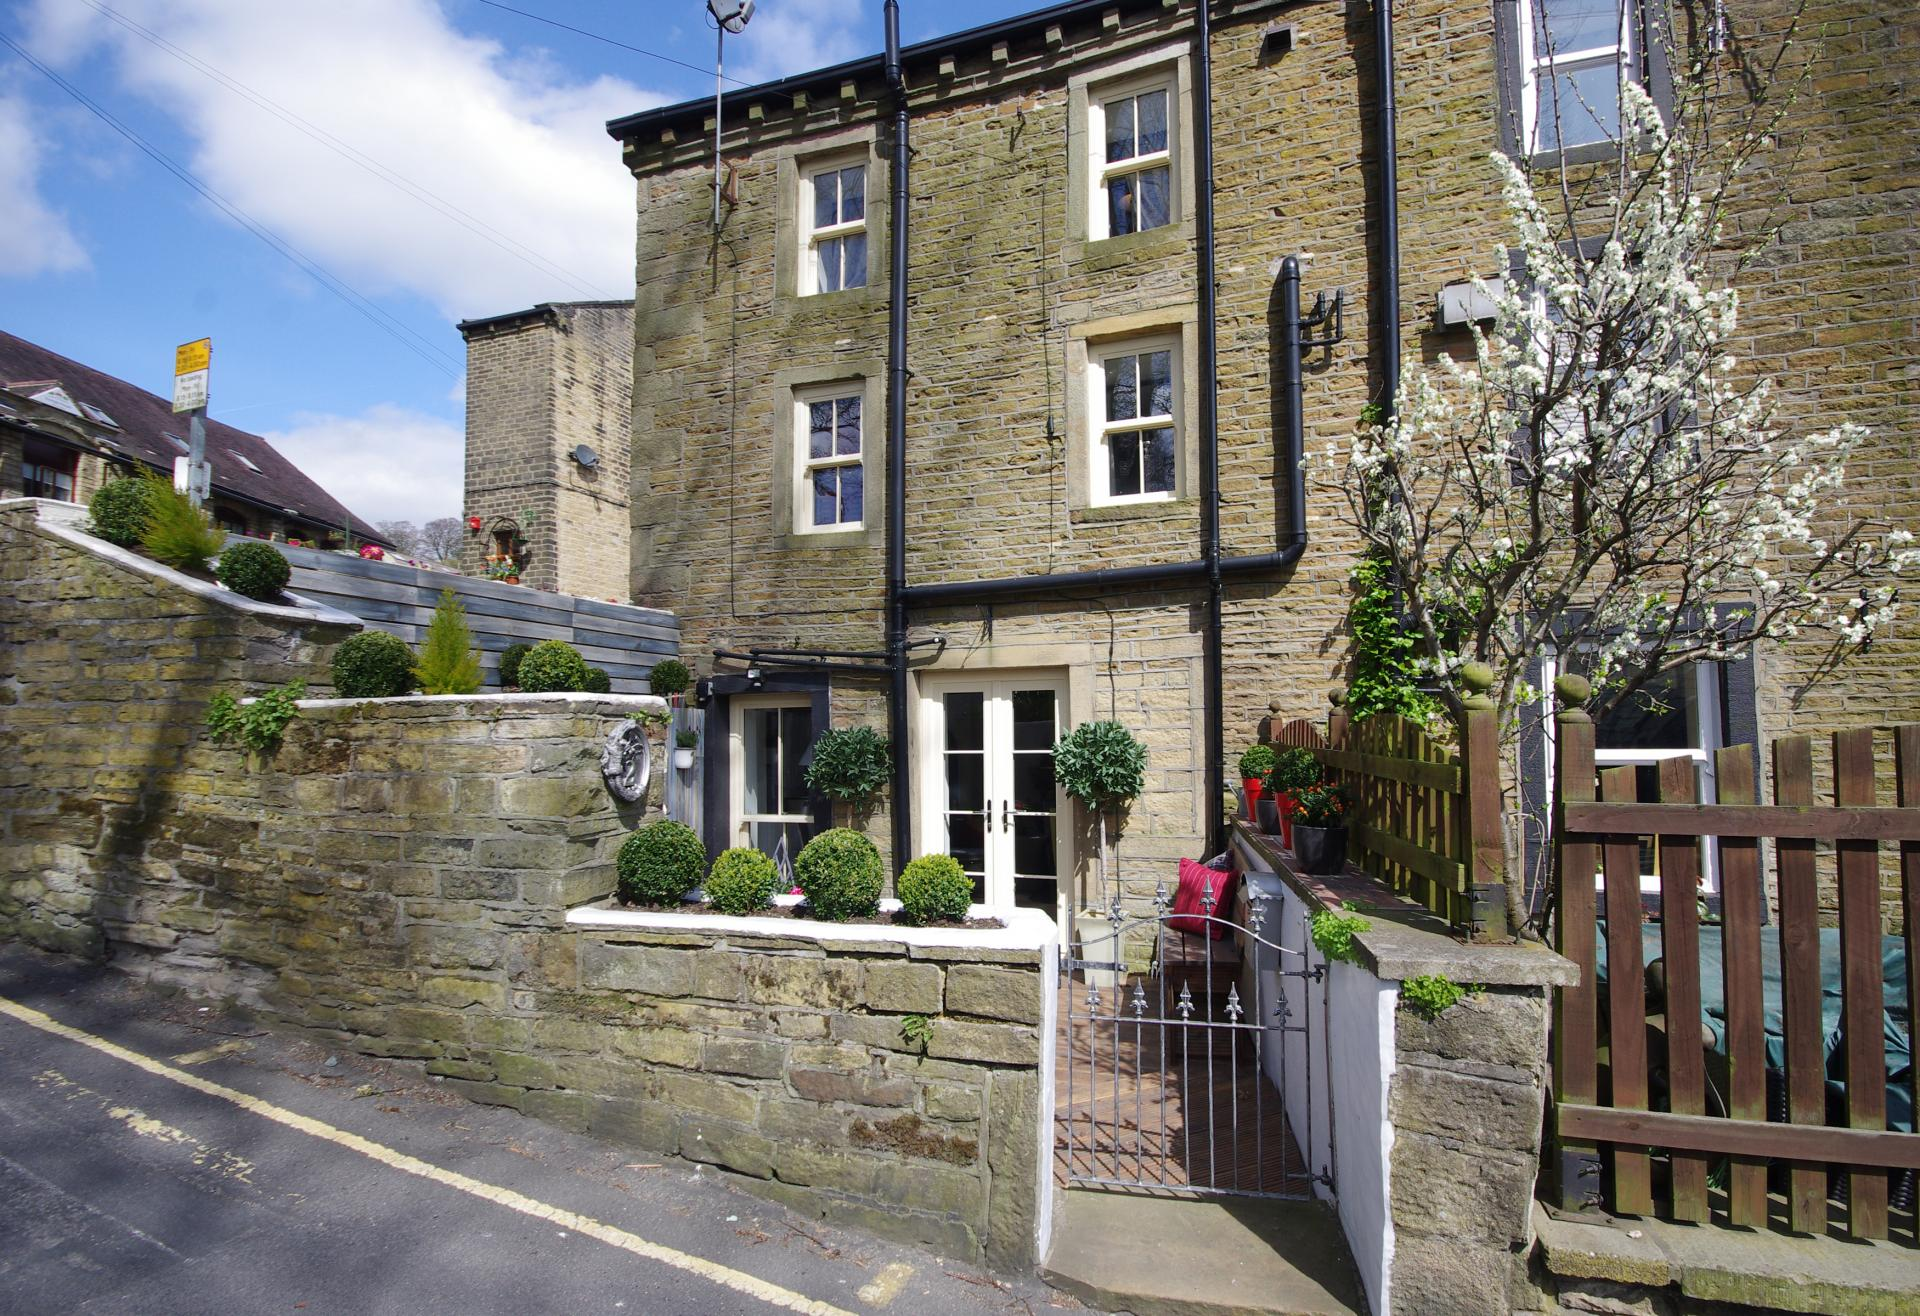 Ripponden Pubs Restaurants